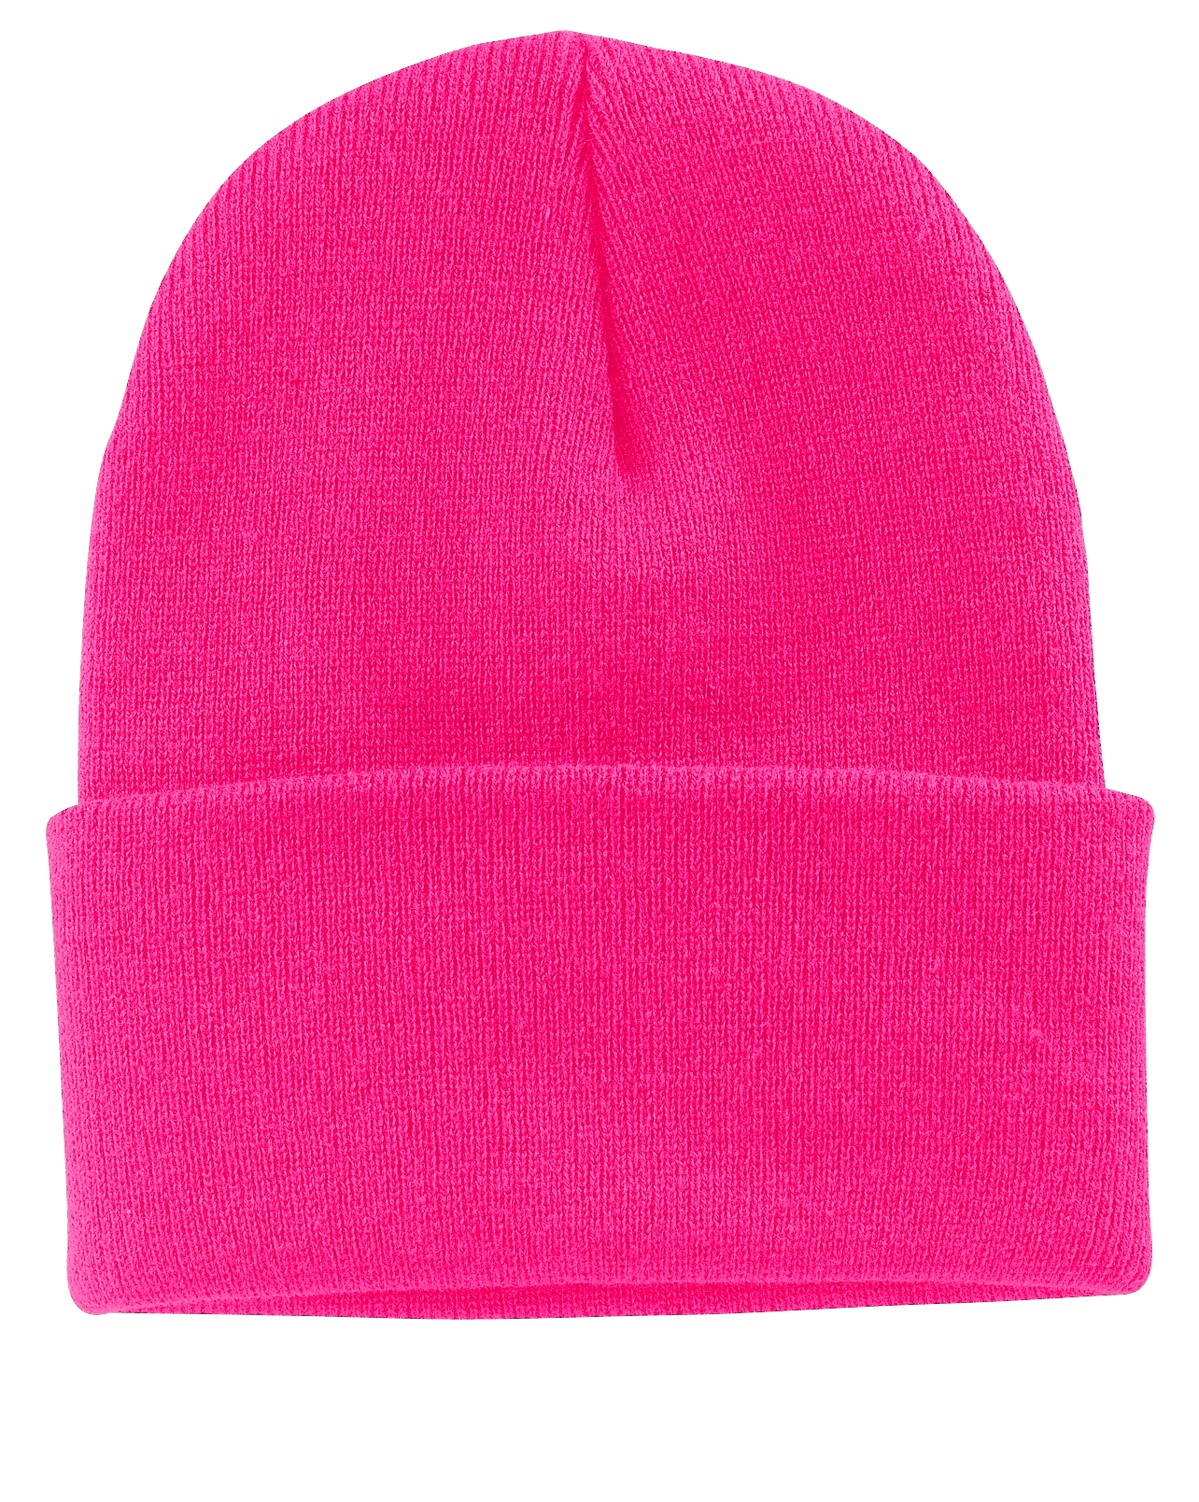 Port & Company ® Knit Cap.  CP90 - Neon Pink Glo